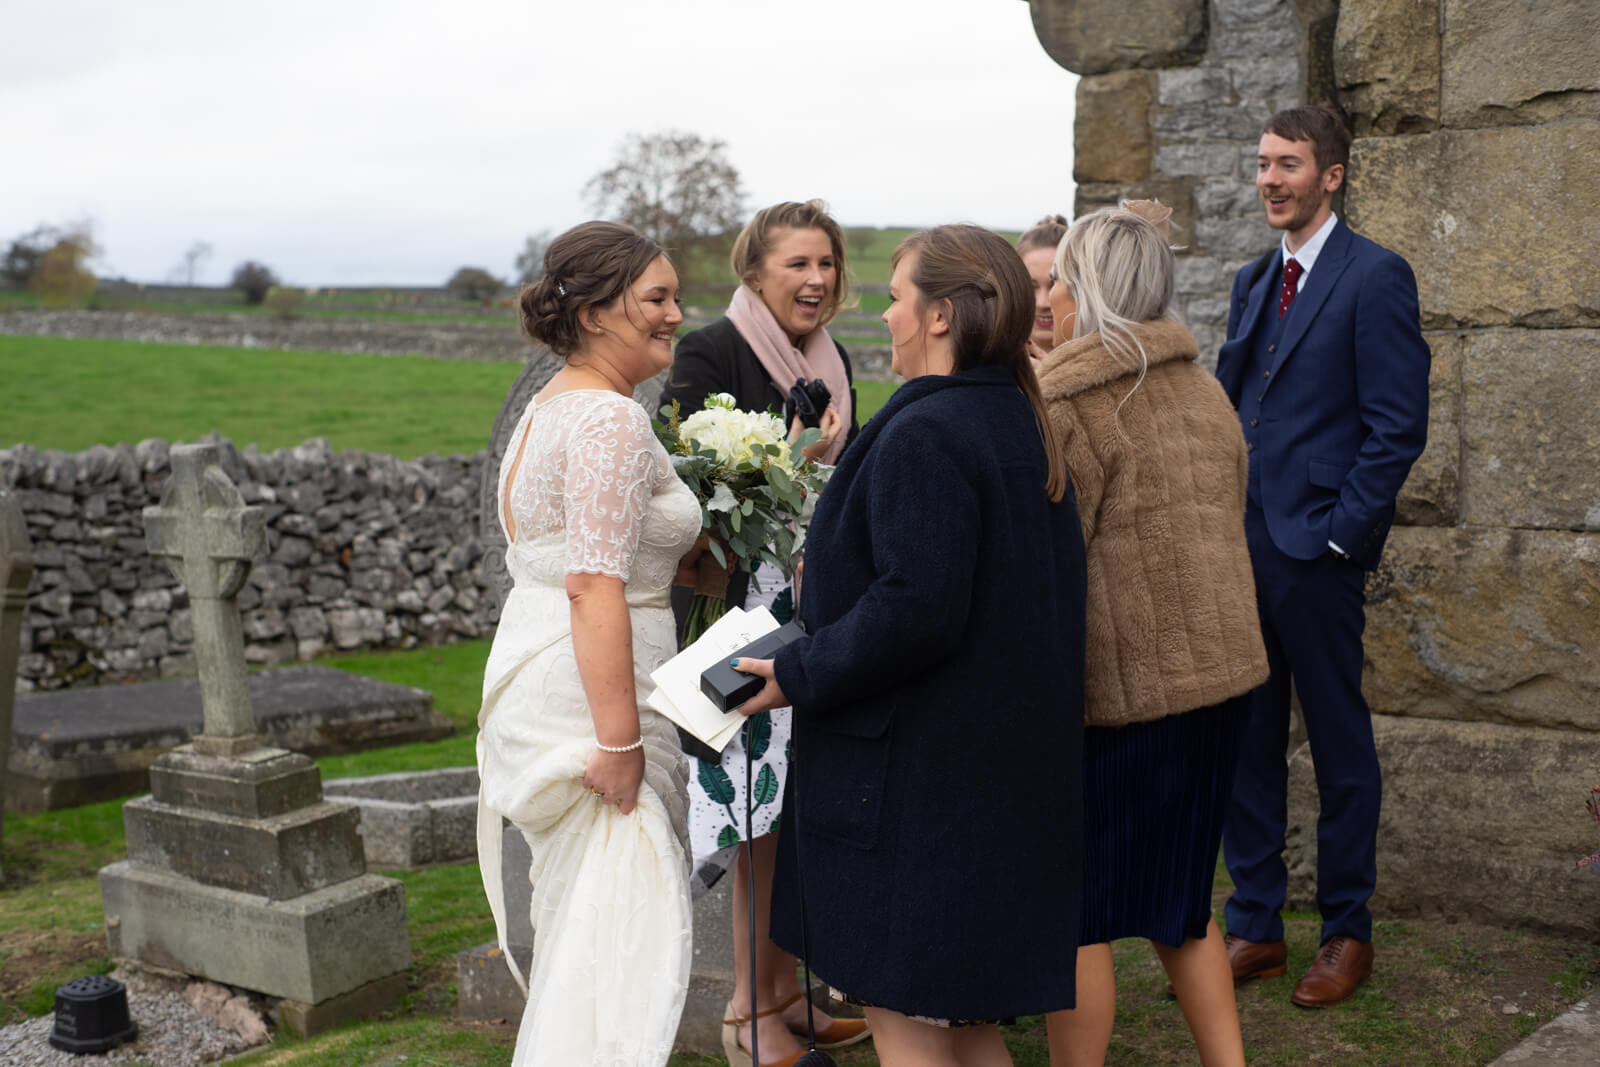 Bride and her friends talking in the churchyard